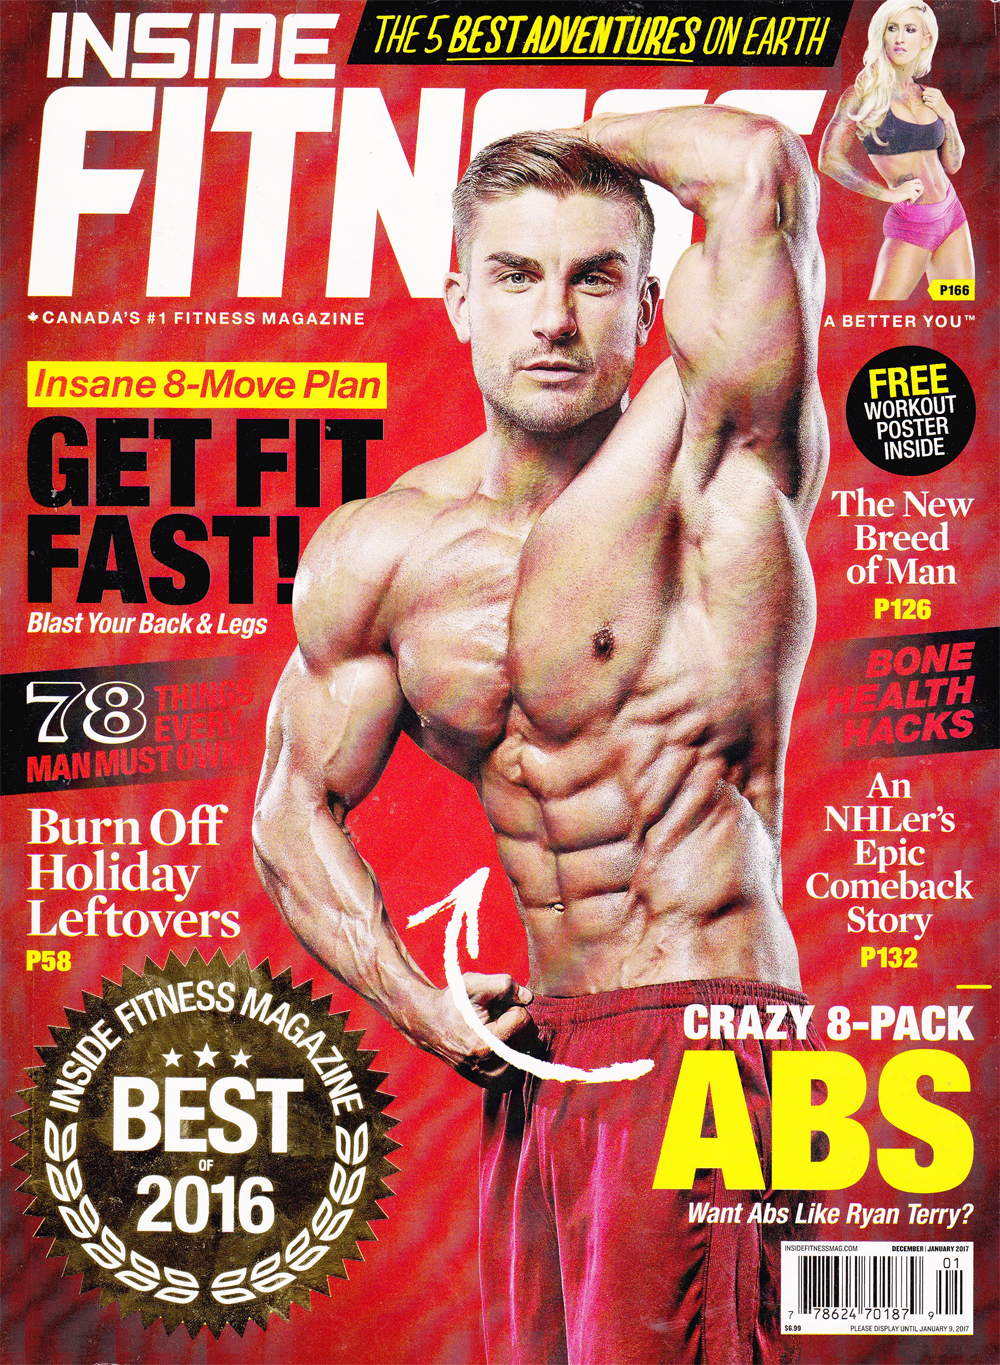 Matt Johnson and Dan Edmunds are contributors to Inside Fitness Magazine